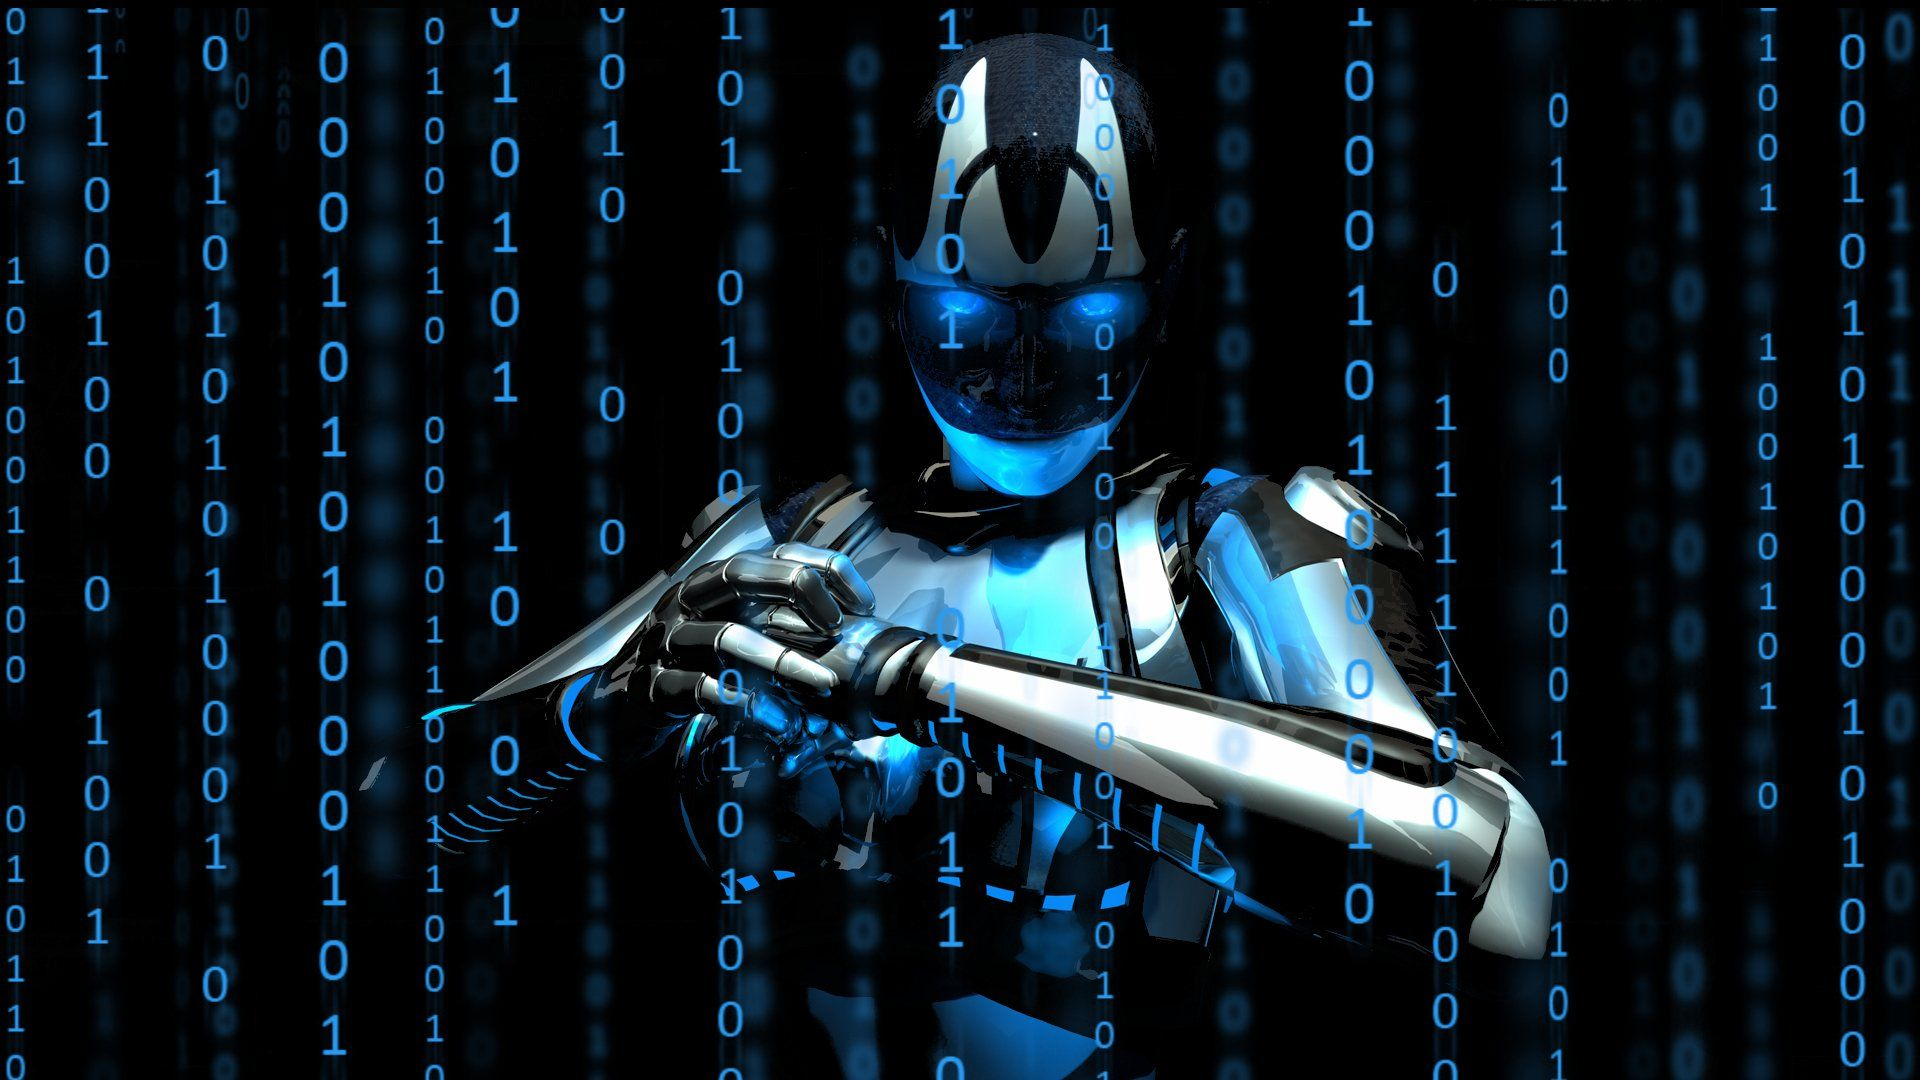 Hd wallpaper robot - 19 Awesome Hd Robot Wallpapers